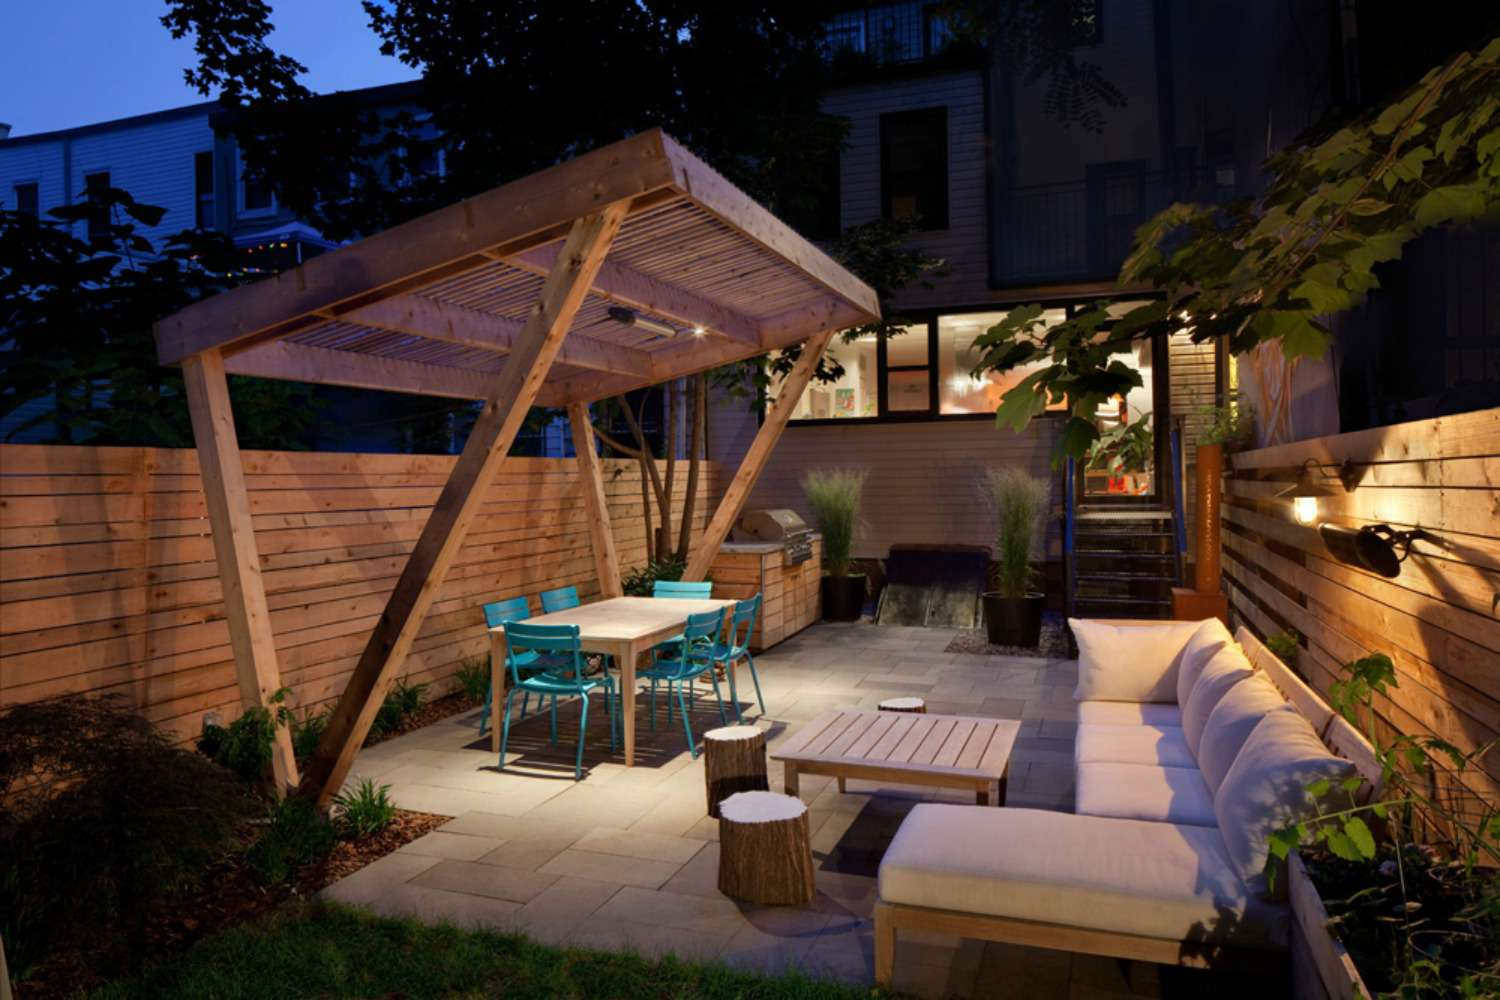 15 Shade Ideas For Your Outdoor Space for Shade Backyard Ideas